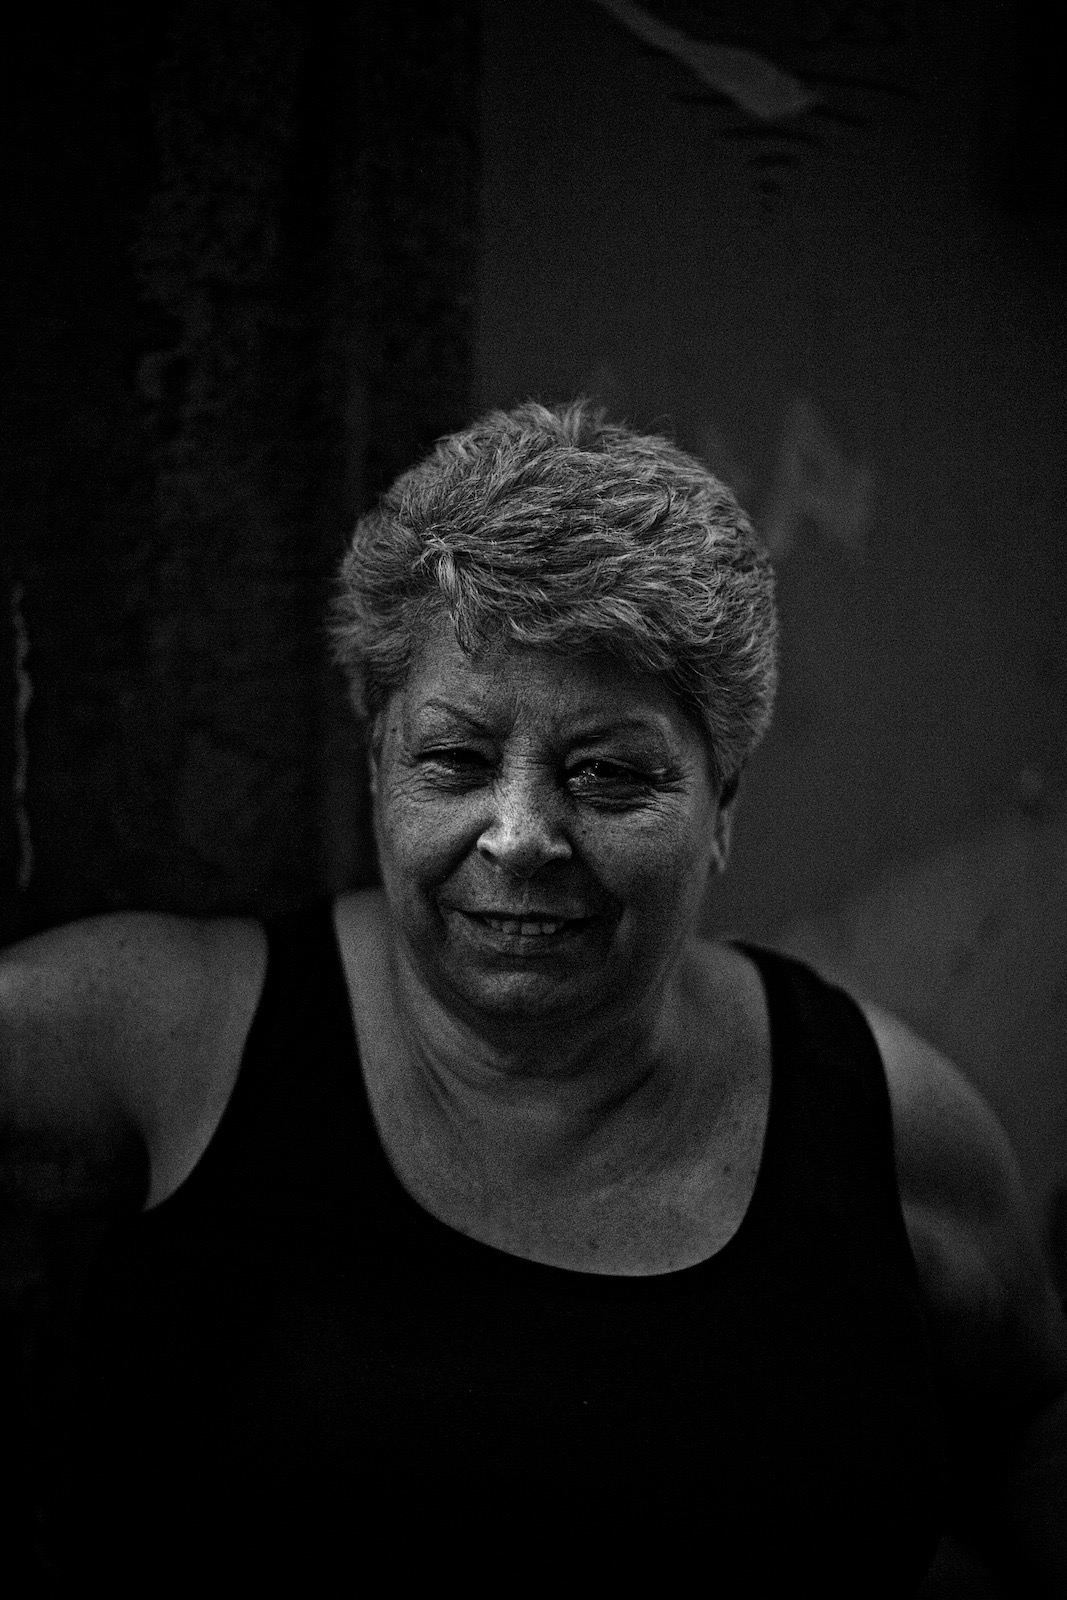 faces-of-napoli-denis-bosnic-photography-naples-bw-spaccanapoli-summer-59.jpg